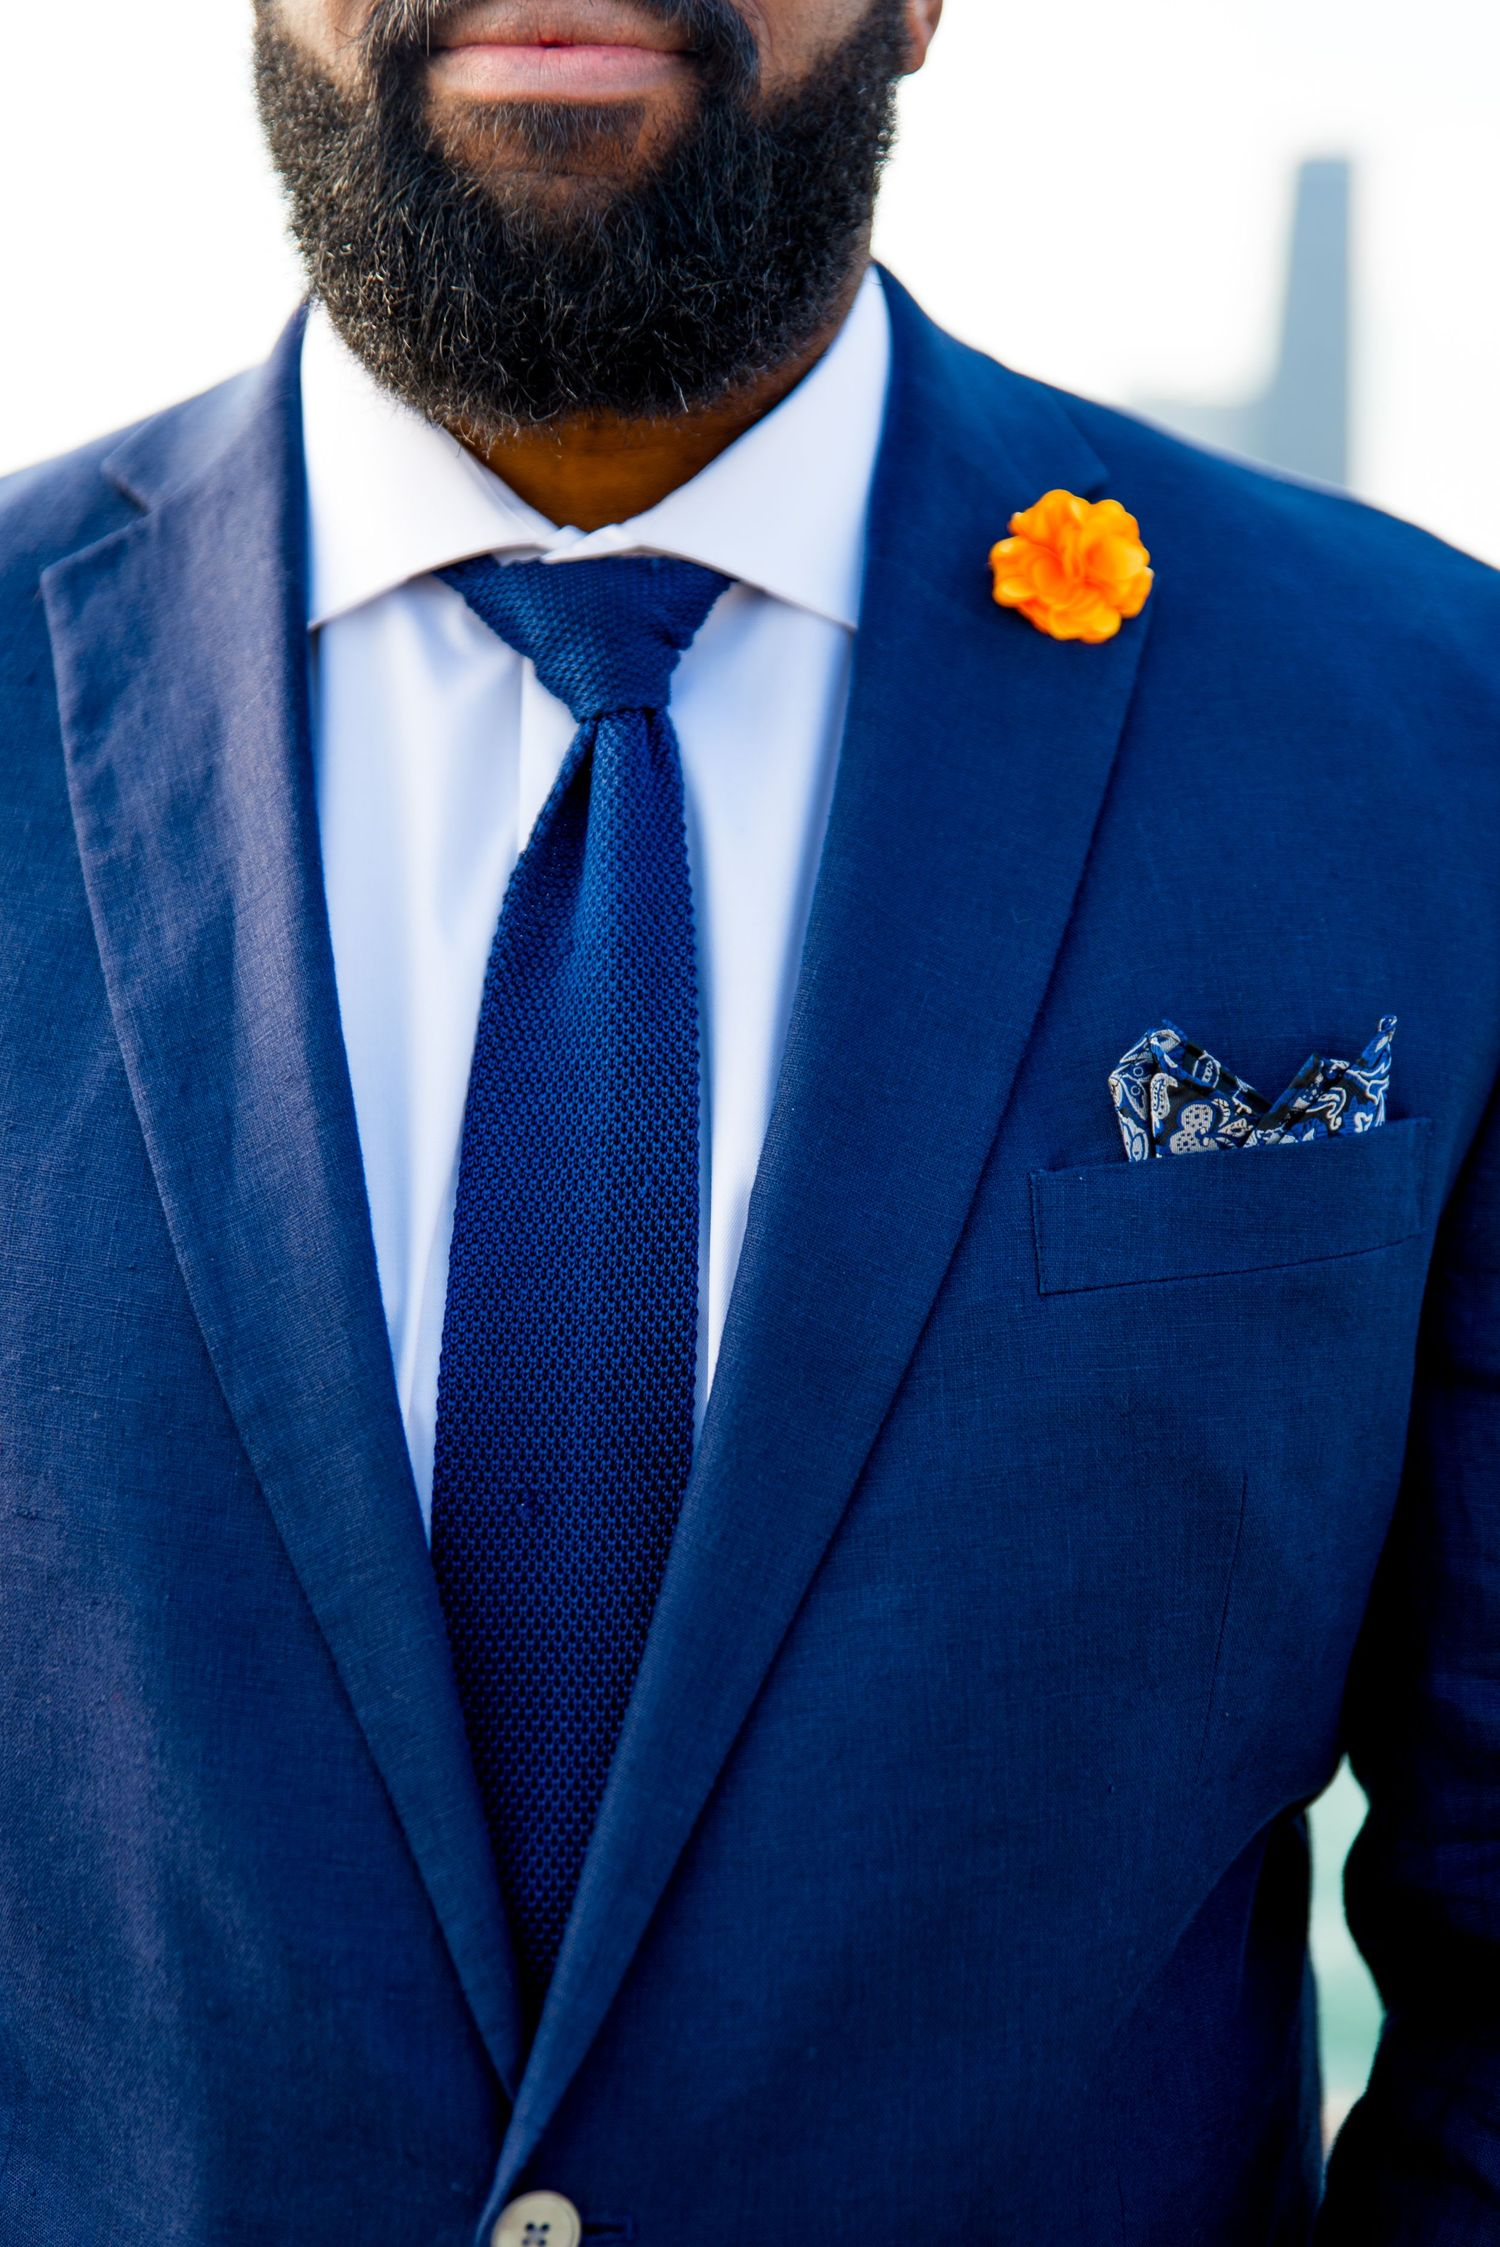 man in navy suit with orange flower boutonniere for Chicago sunrise elopement